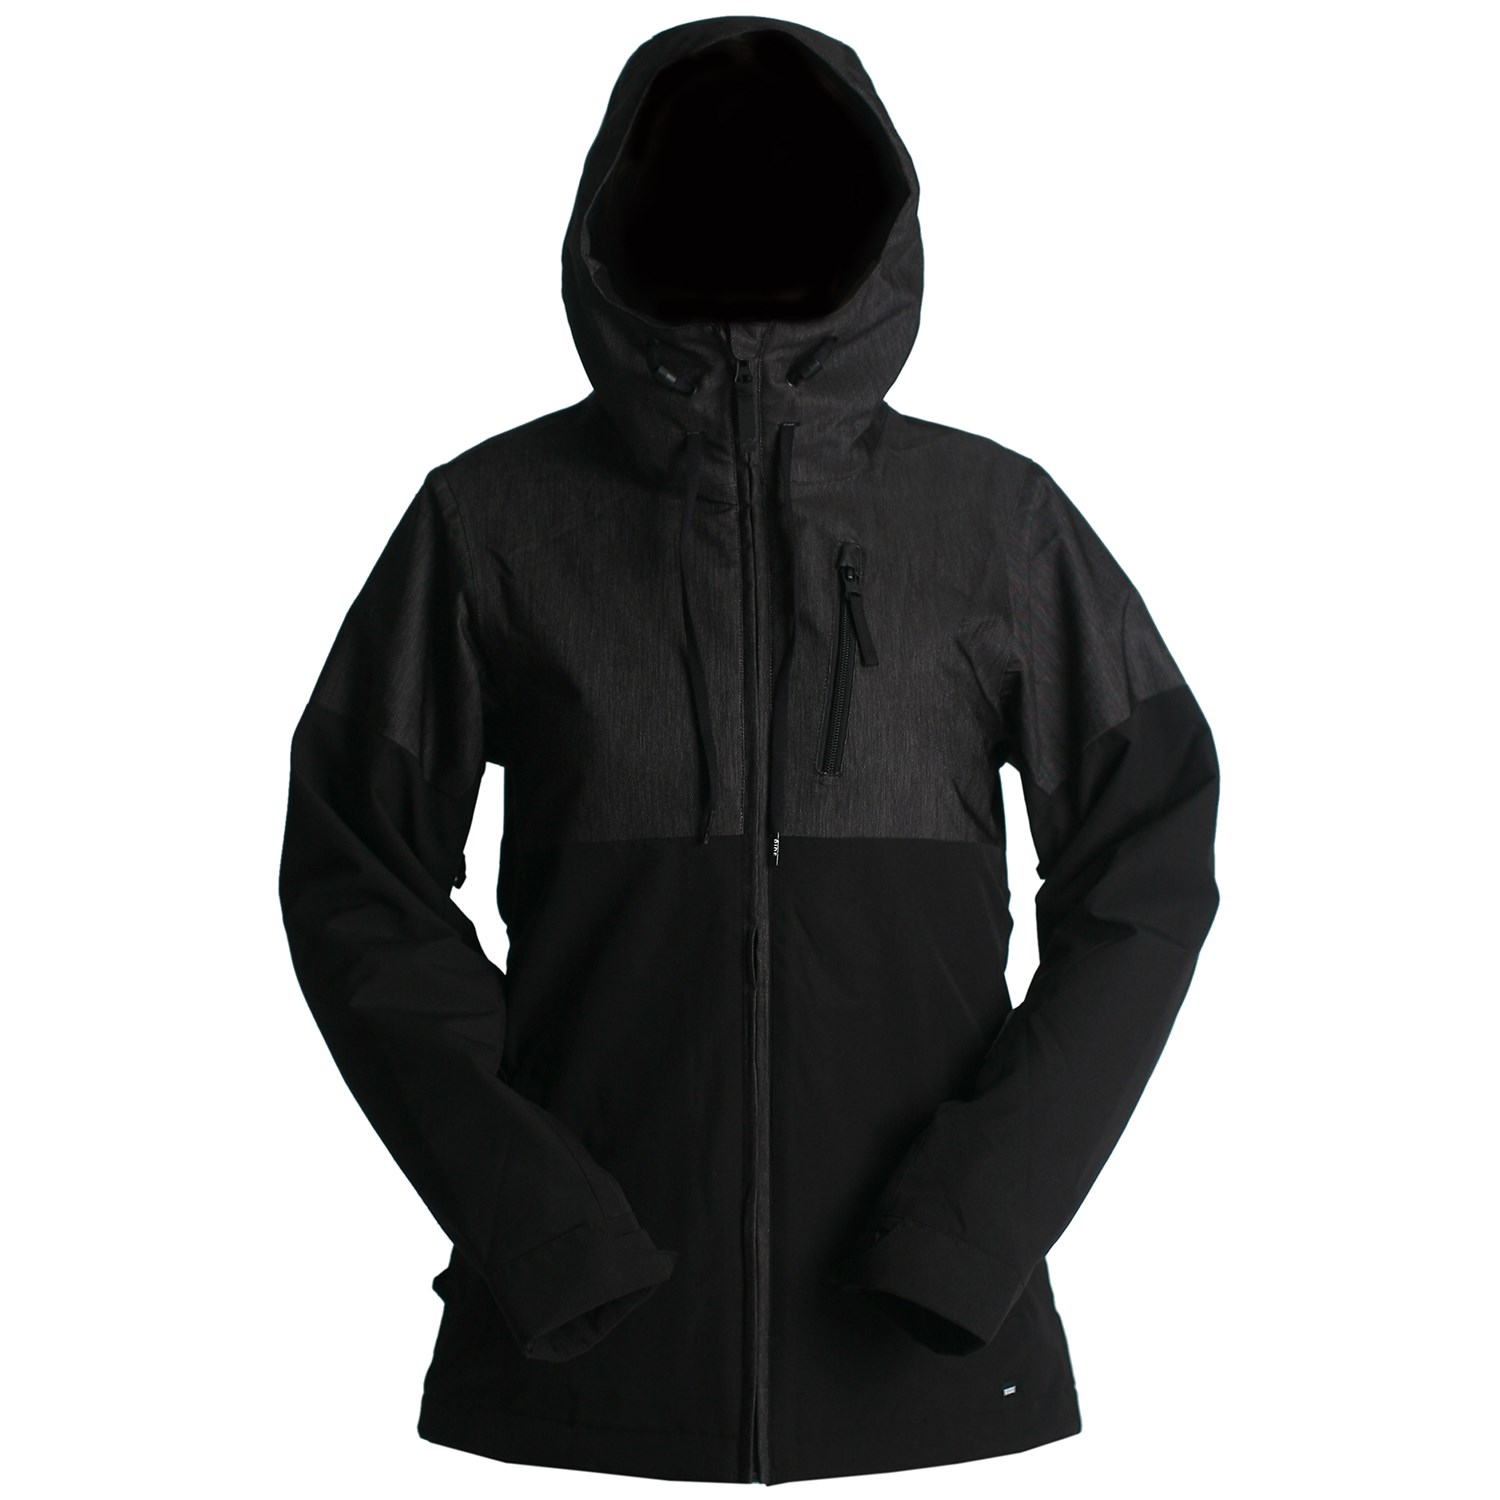 womens snowboarding jackets ride wegewood jacket - womenu0027s $169.00 zzqyvni